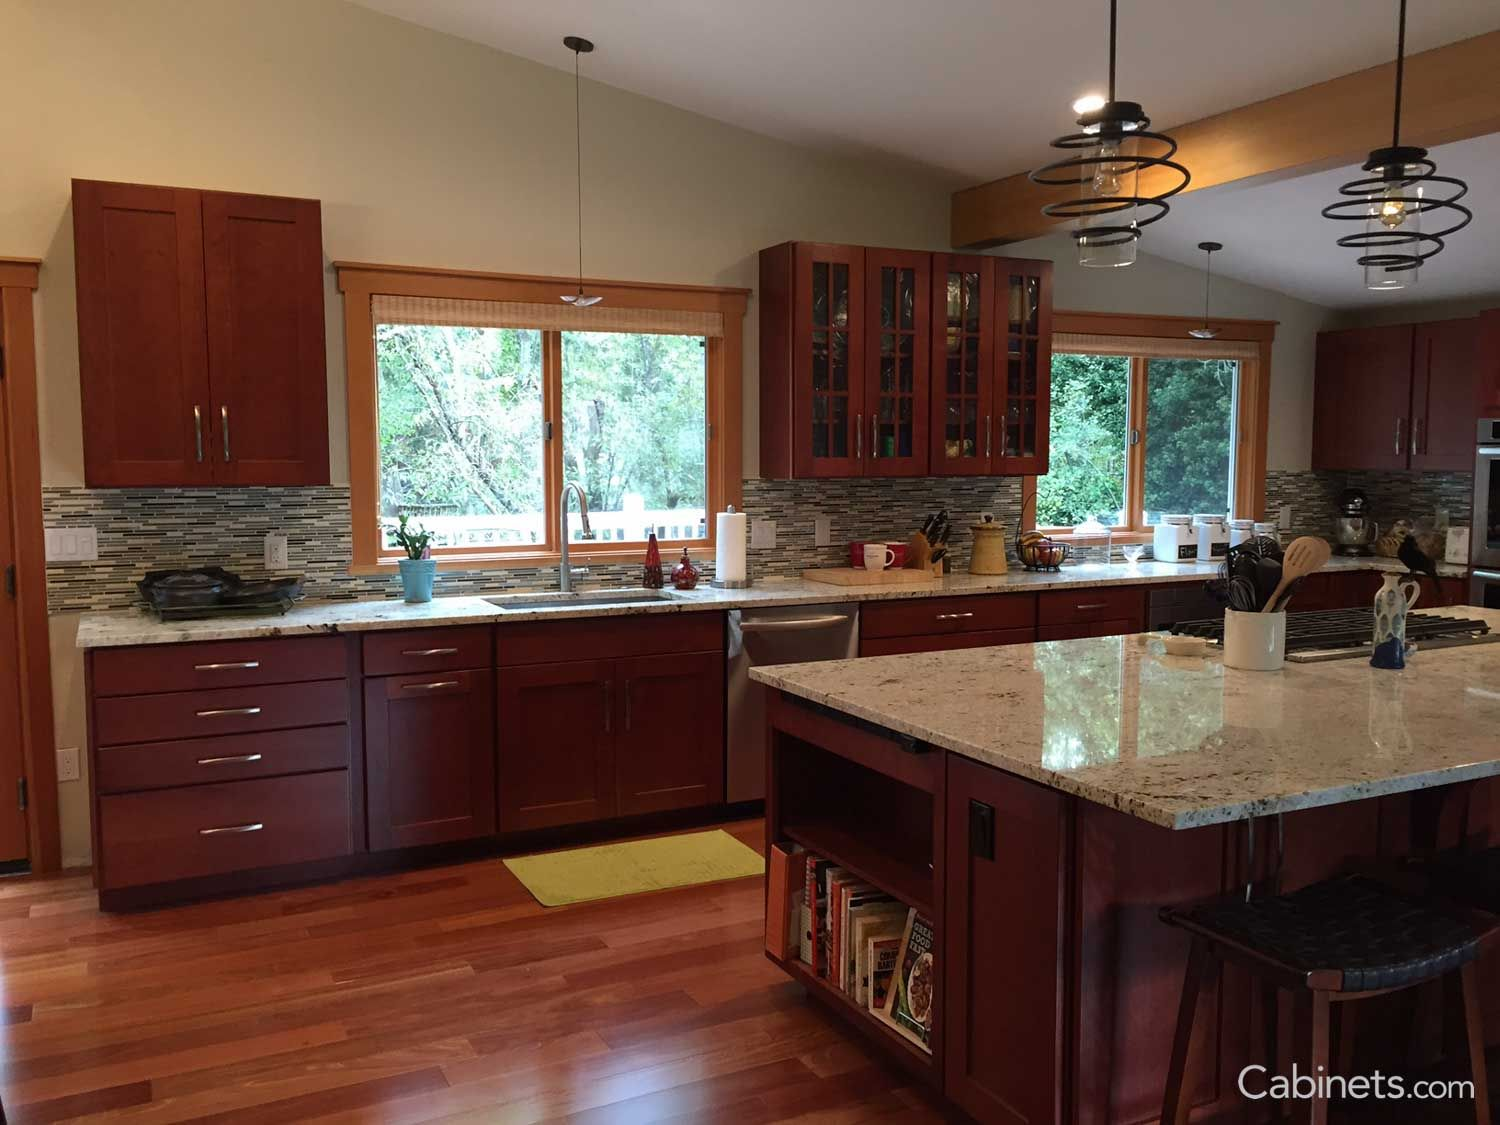 Pin By Cynmuller On Kitchen Cherry Cabinets Kitchen Open Concept Kitchen Online Kitchen Cabinets